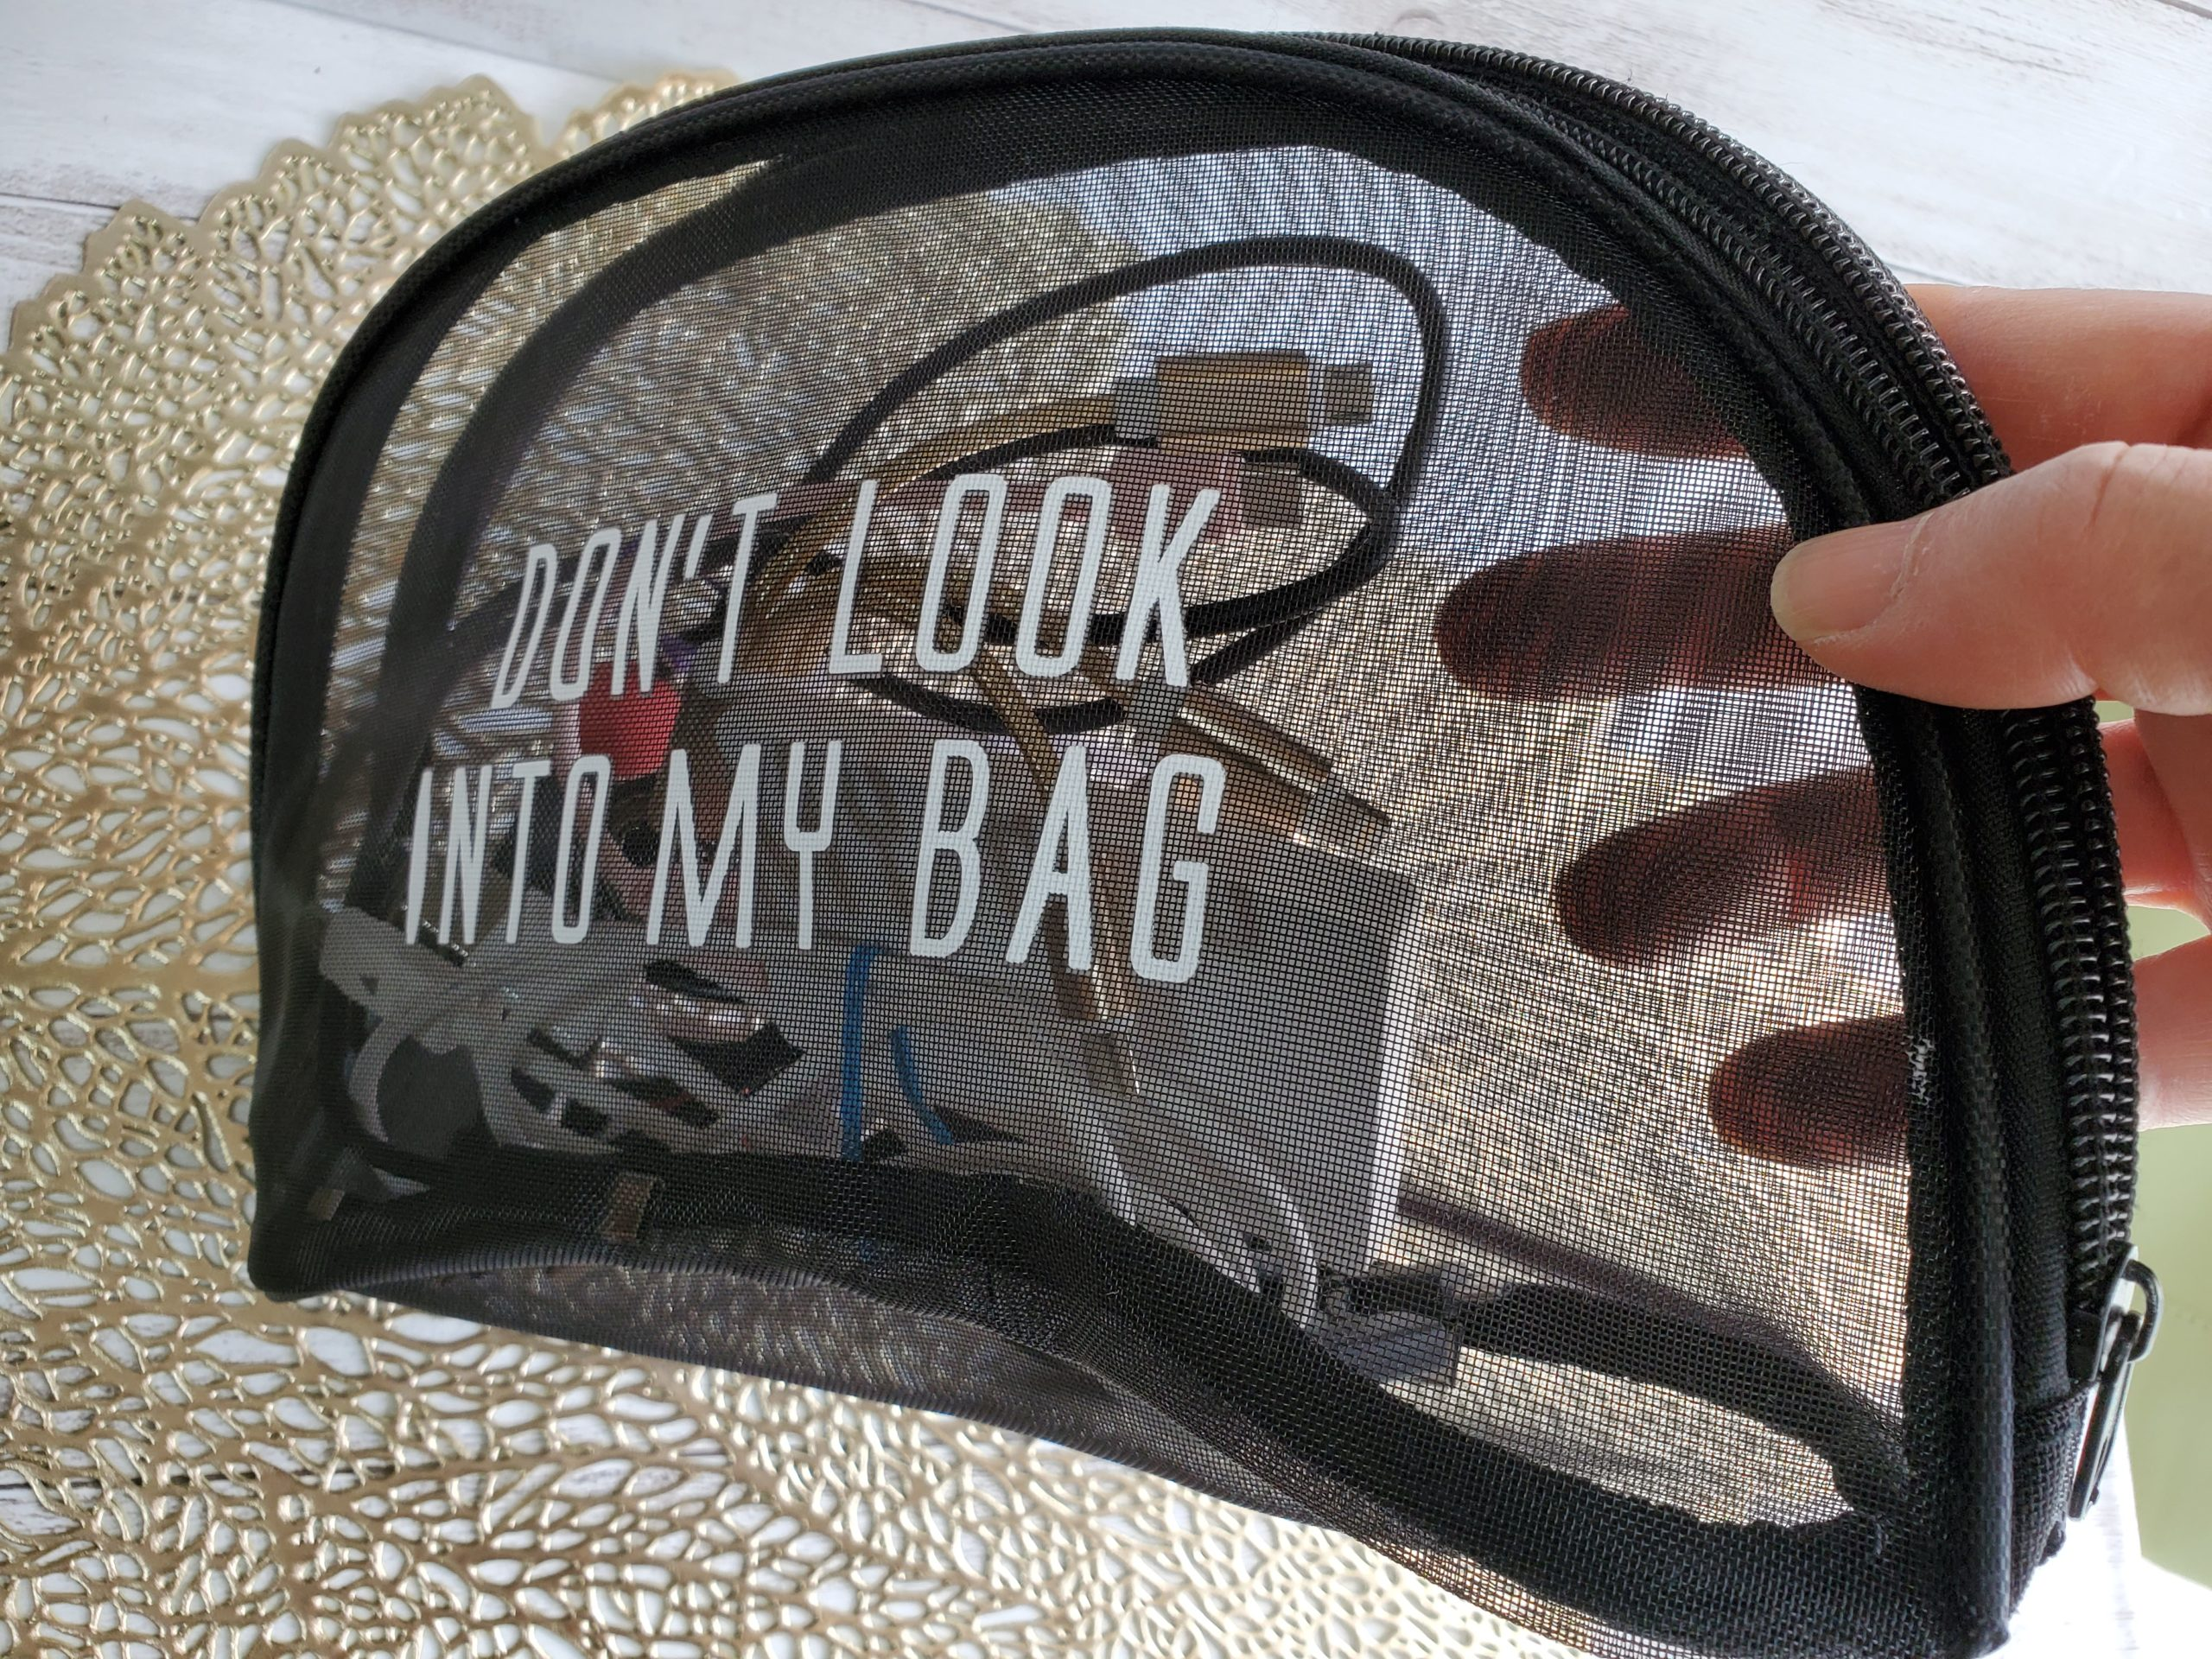 See through make up pouch7